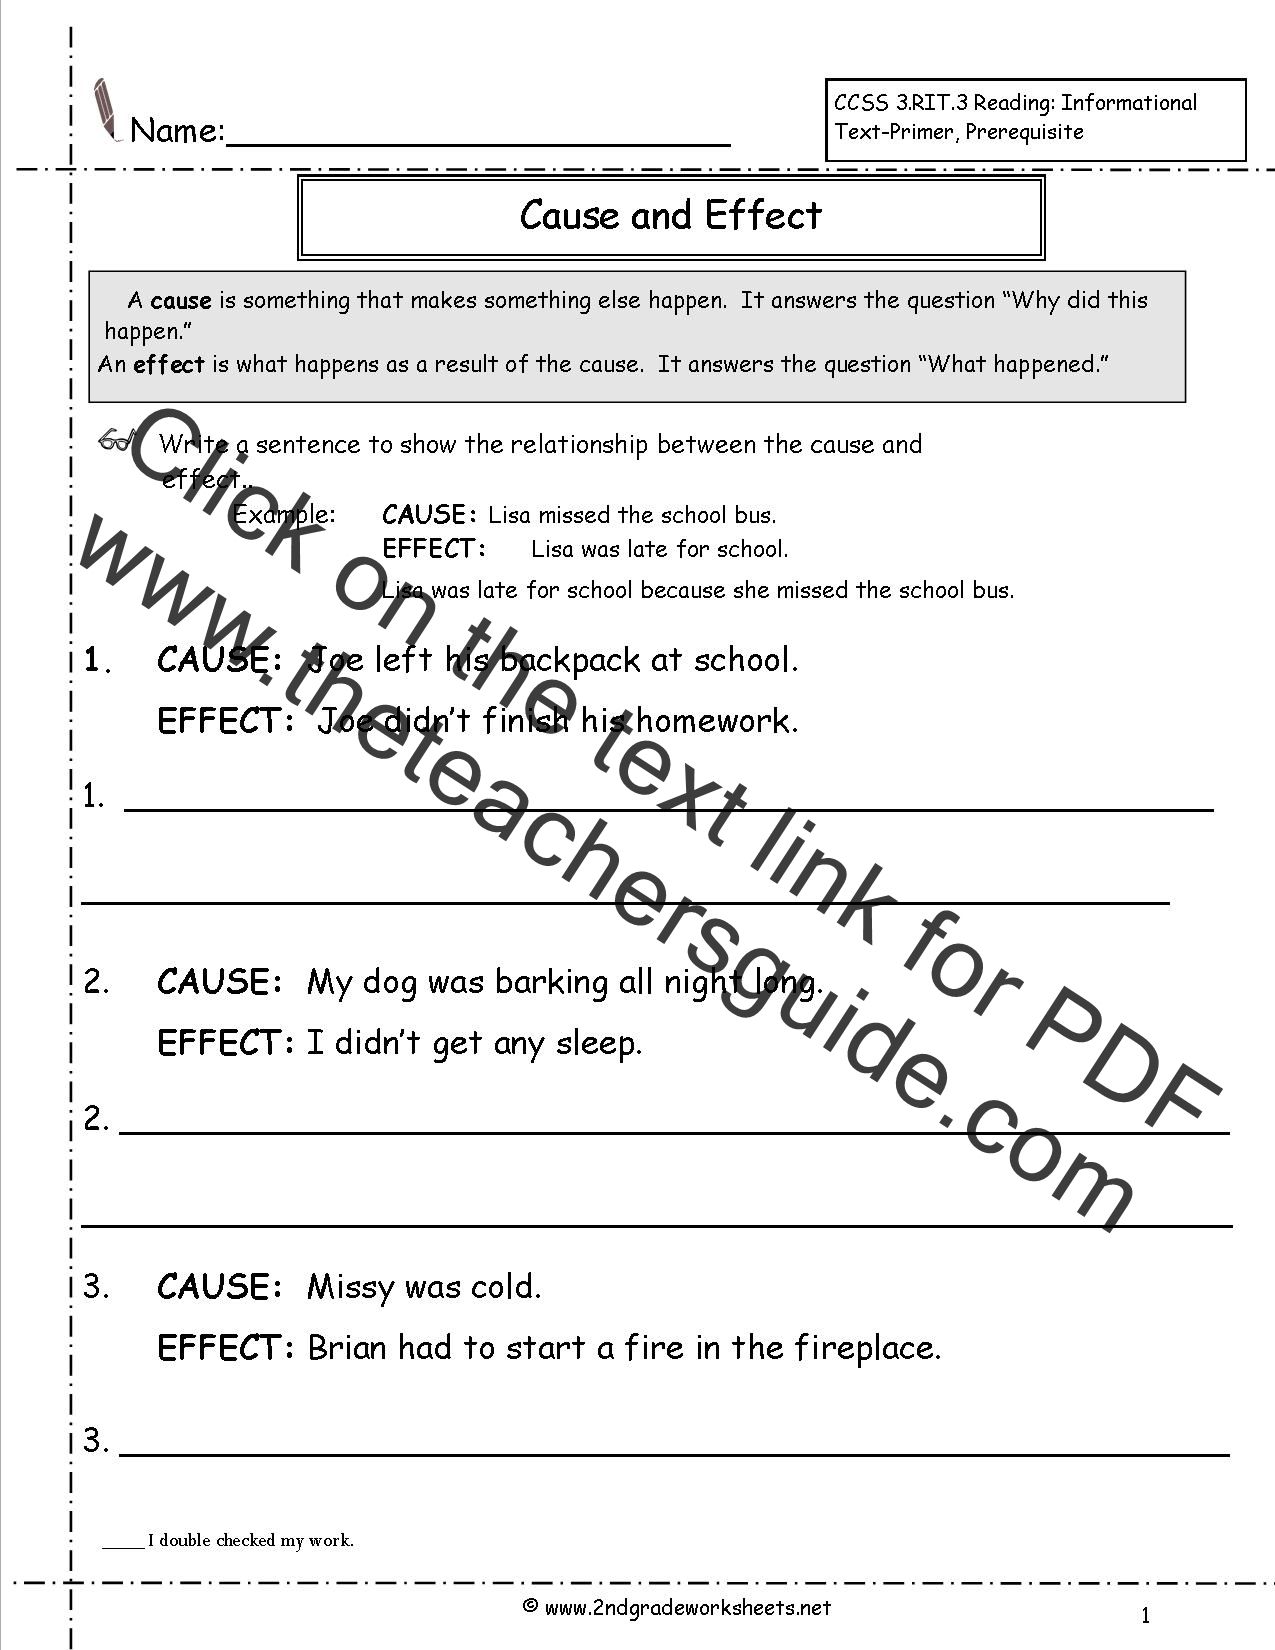 Worksheet Reading Comprehension For 2nd Graders reading worksheeets worksheets